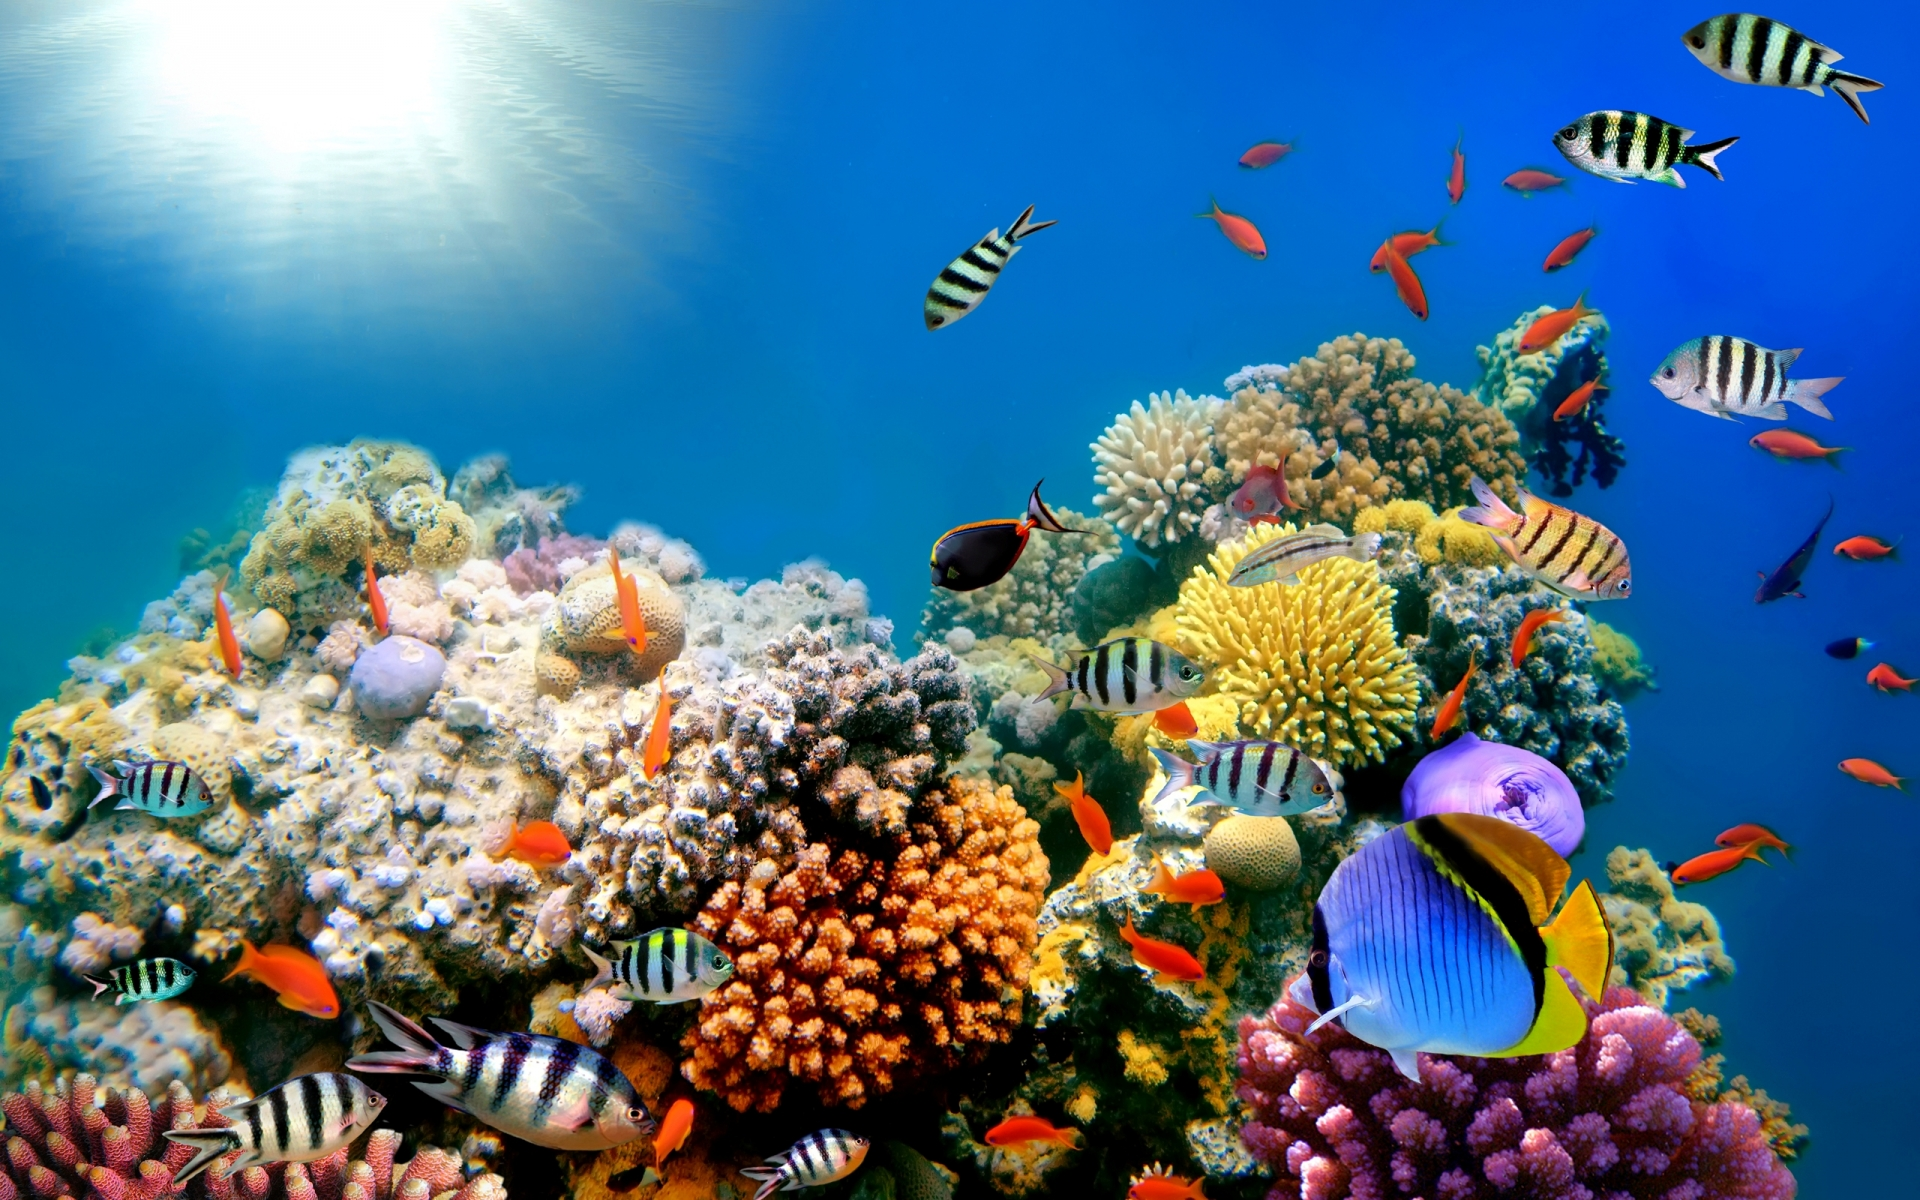 Reef ocean sea underwater wallpaper 1920x1200 31134 1920x1200